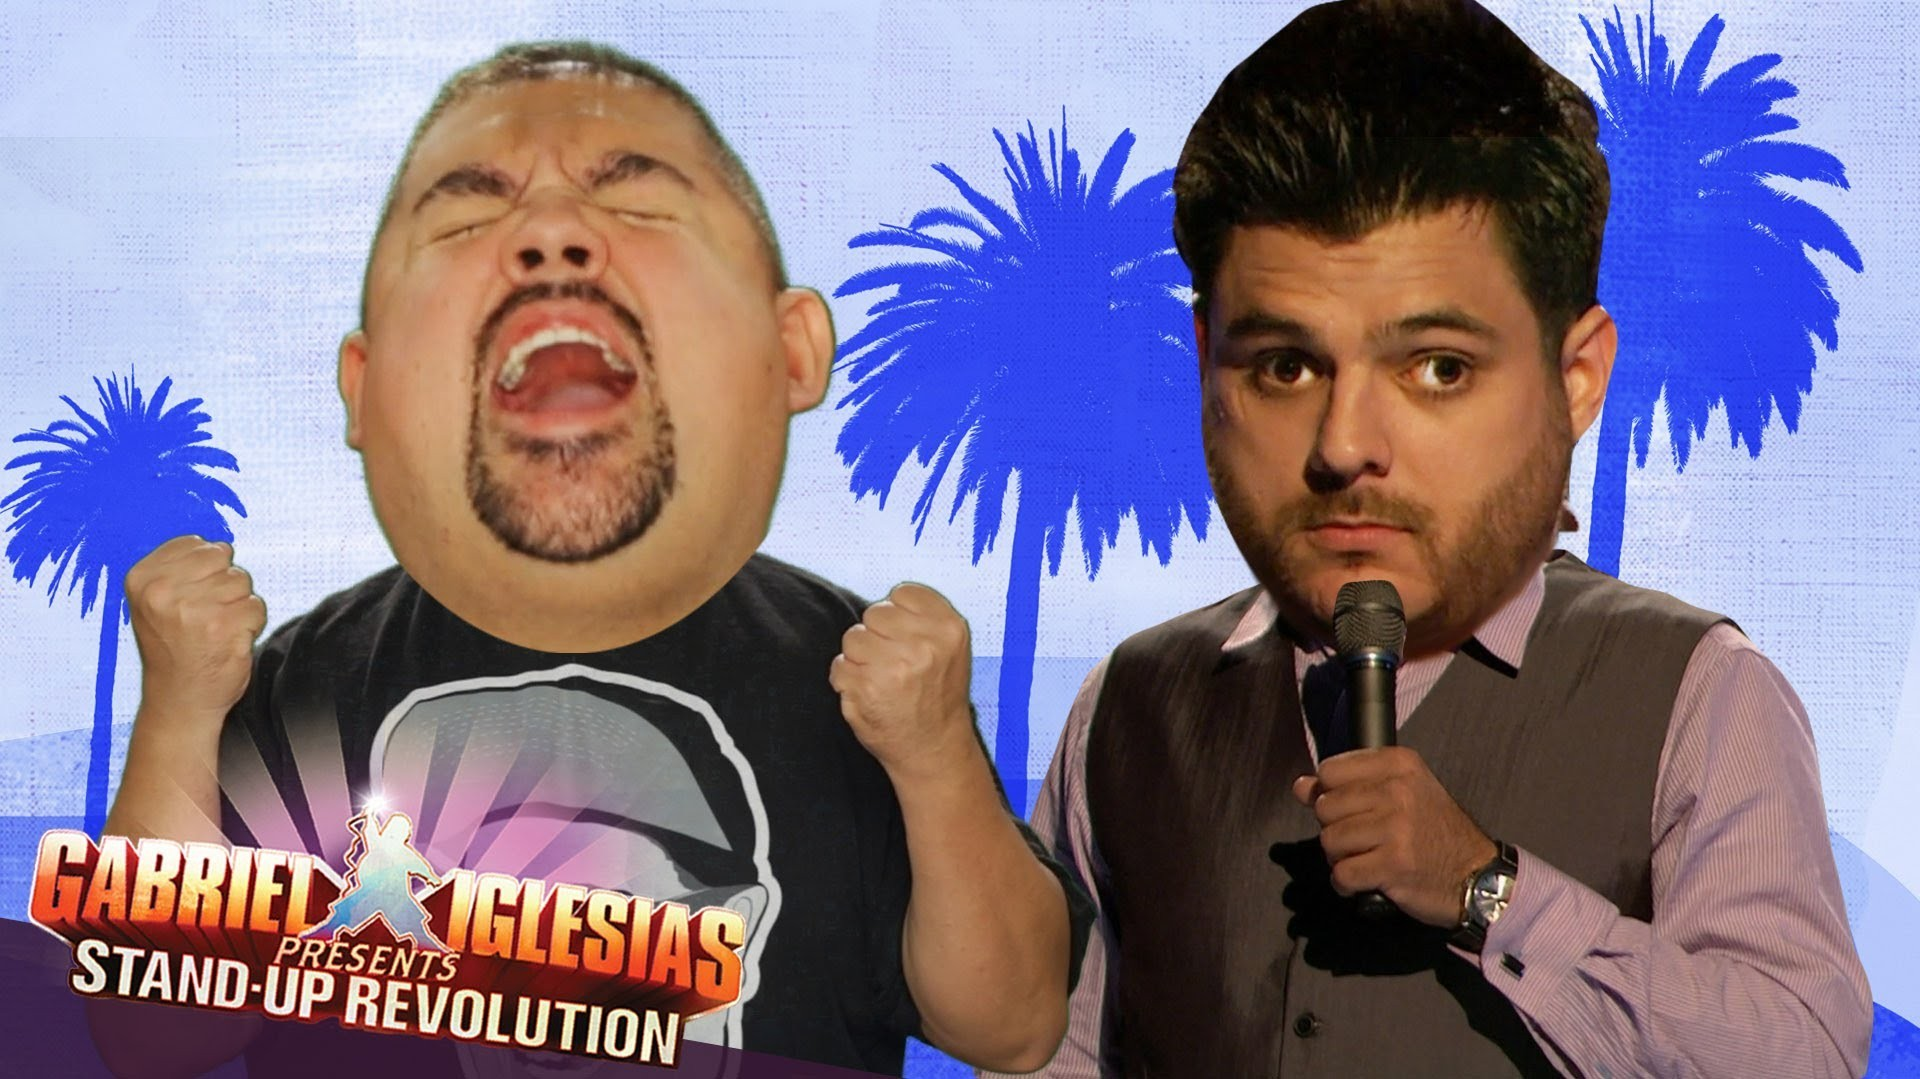 Season 3 of 'Gabriel Iglesias Presents Stand-Up Revolution' premieres on Oct. 3